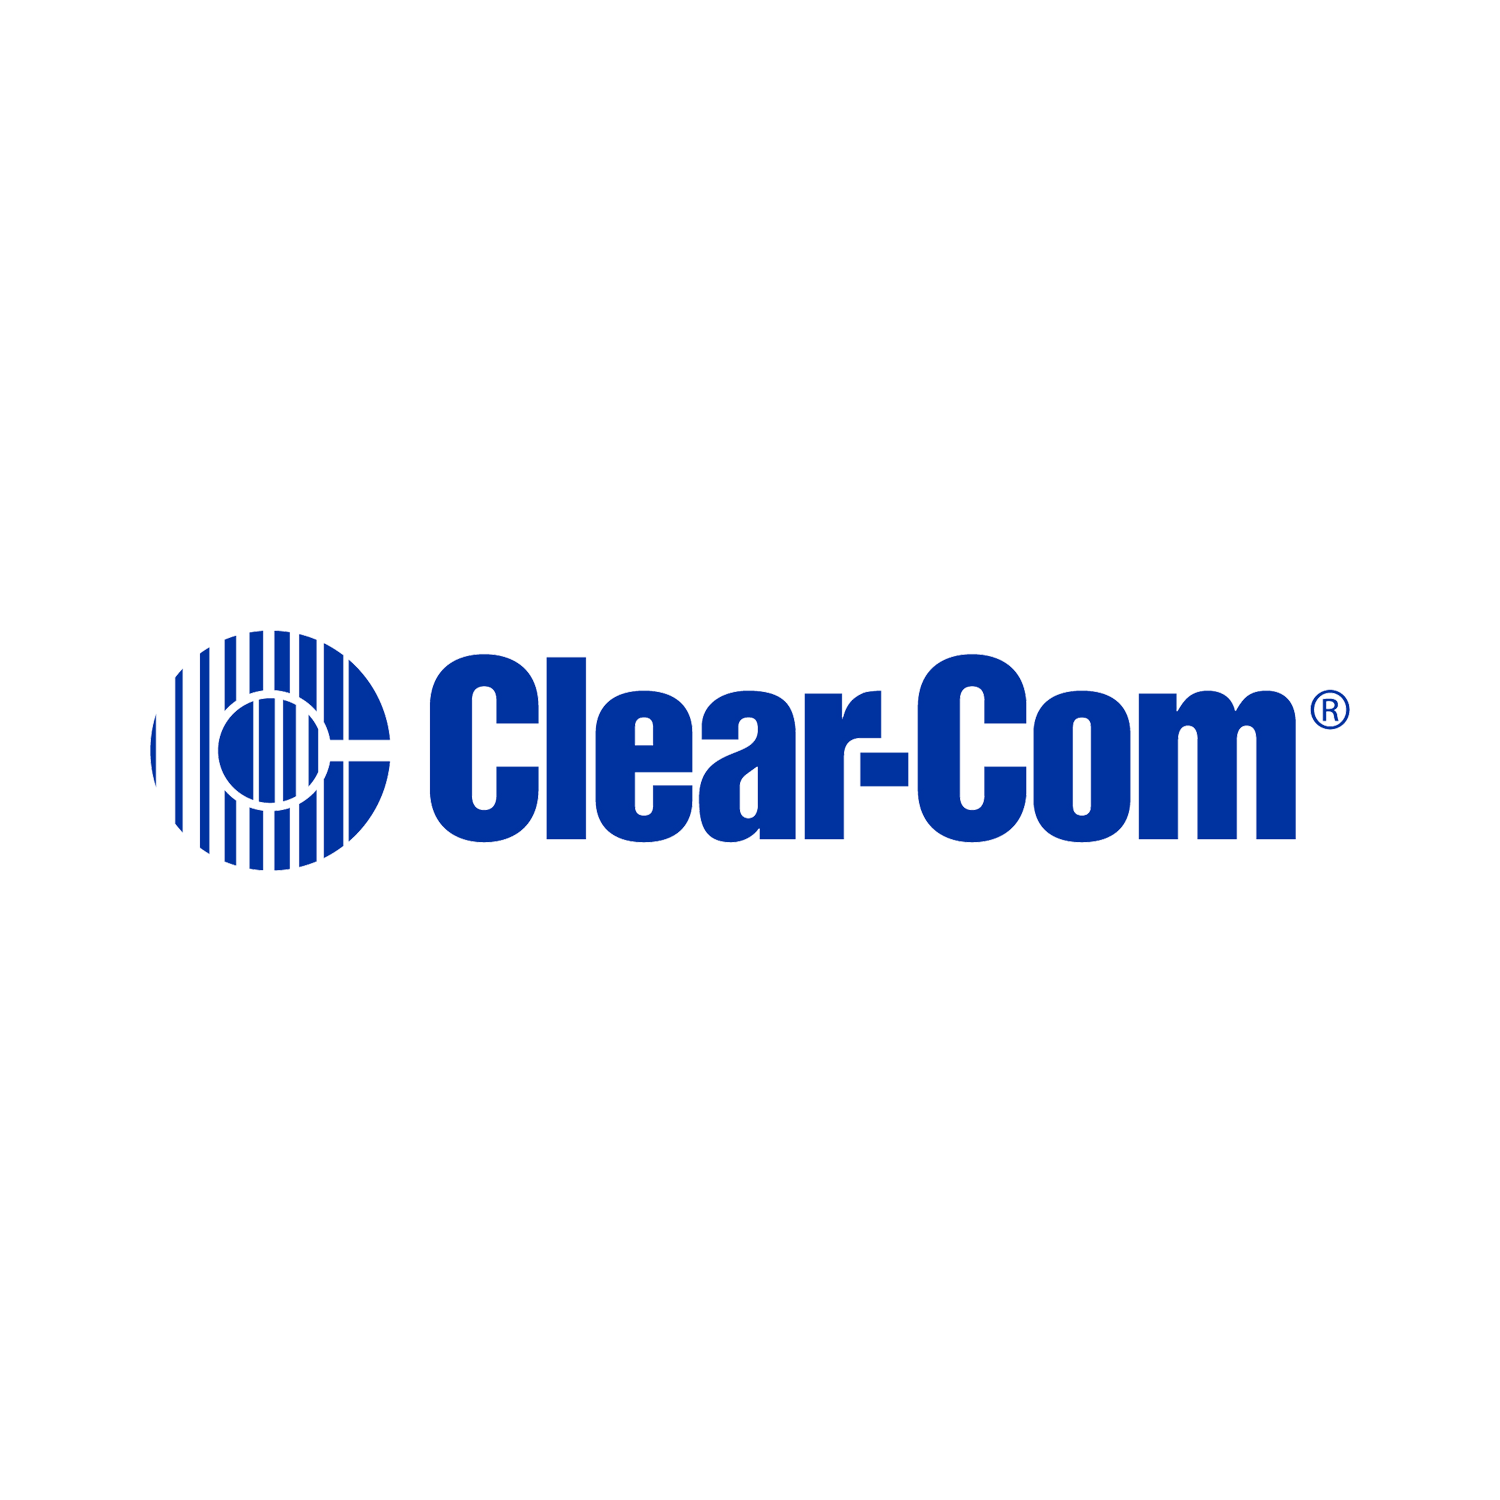 Clearcom Holdings